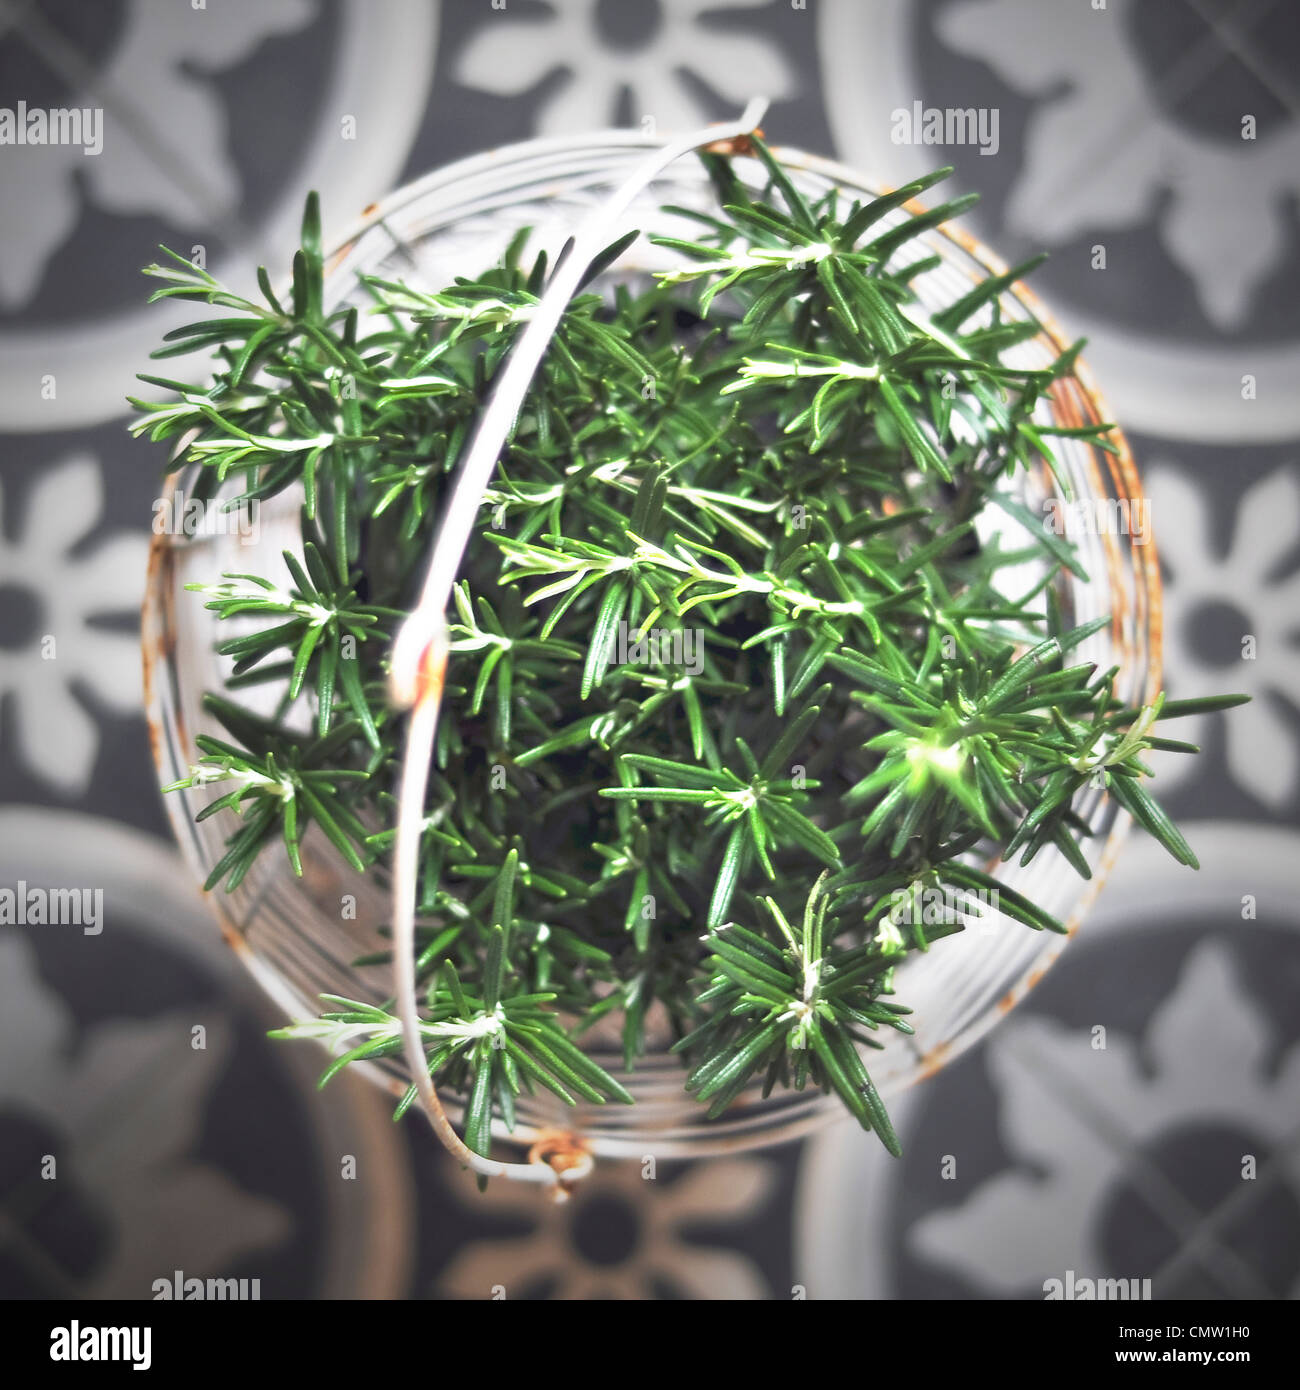 Close-up of green herb in basket - Stock Image